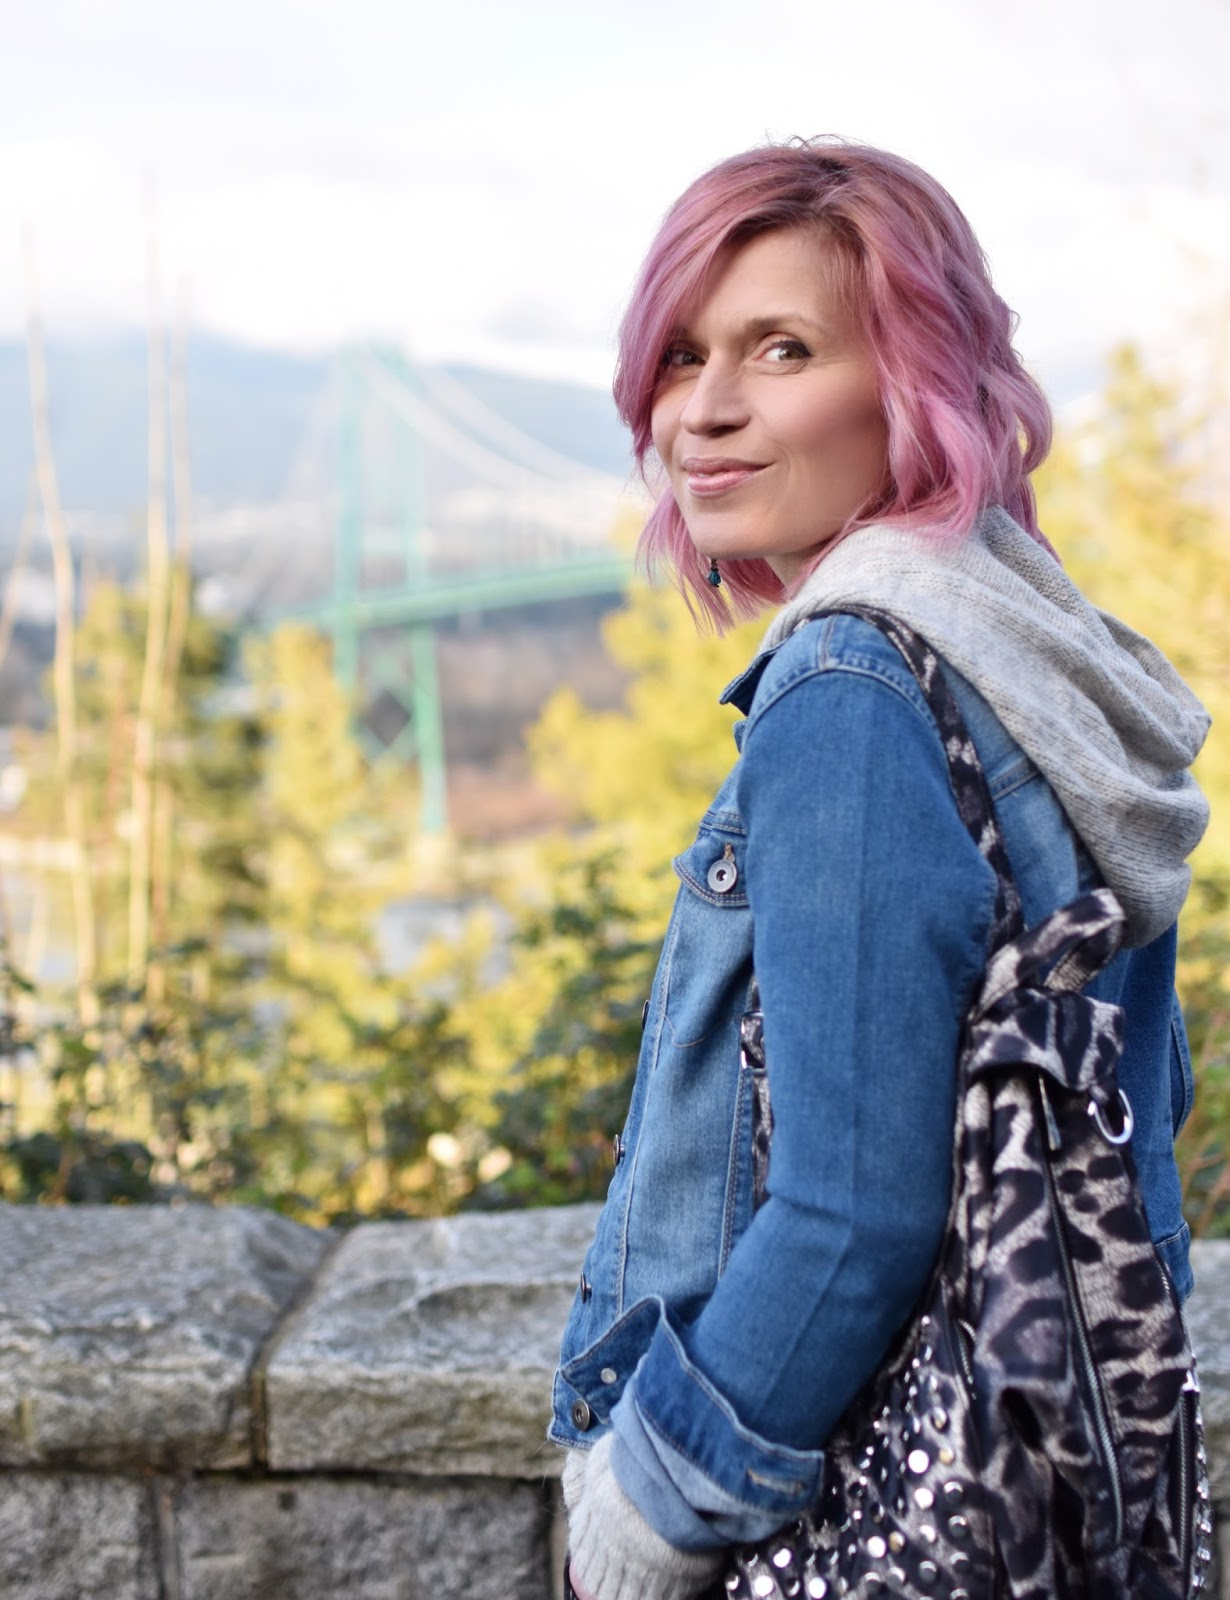 Monika Faulkner outfit inspiration - hoodie sweater, denim jacket, leopard-patterned backpack, pink hair